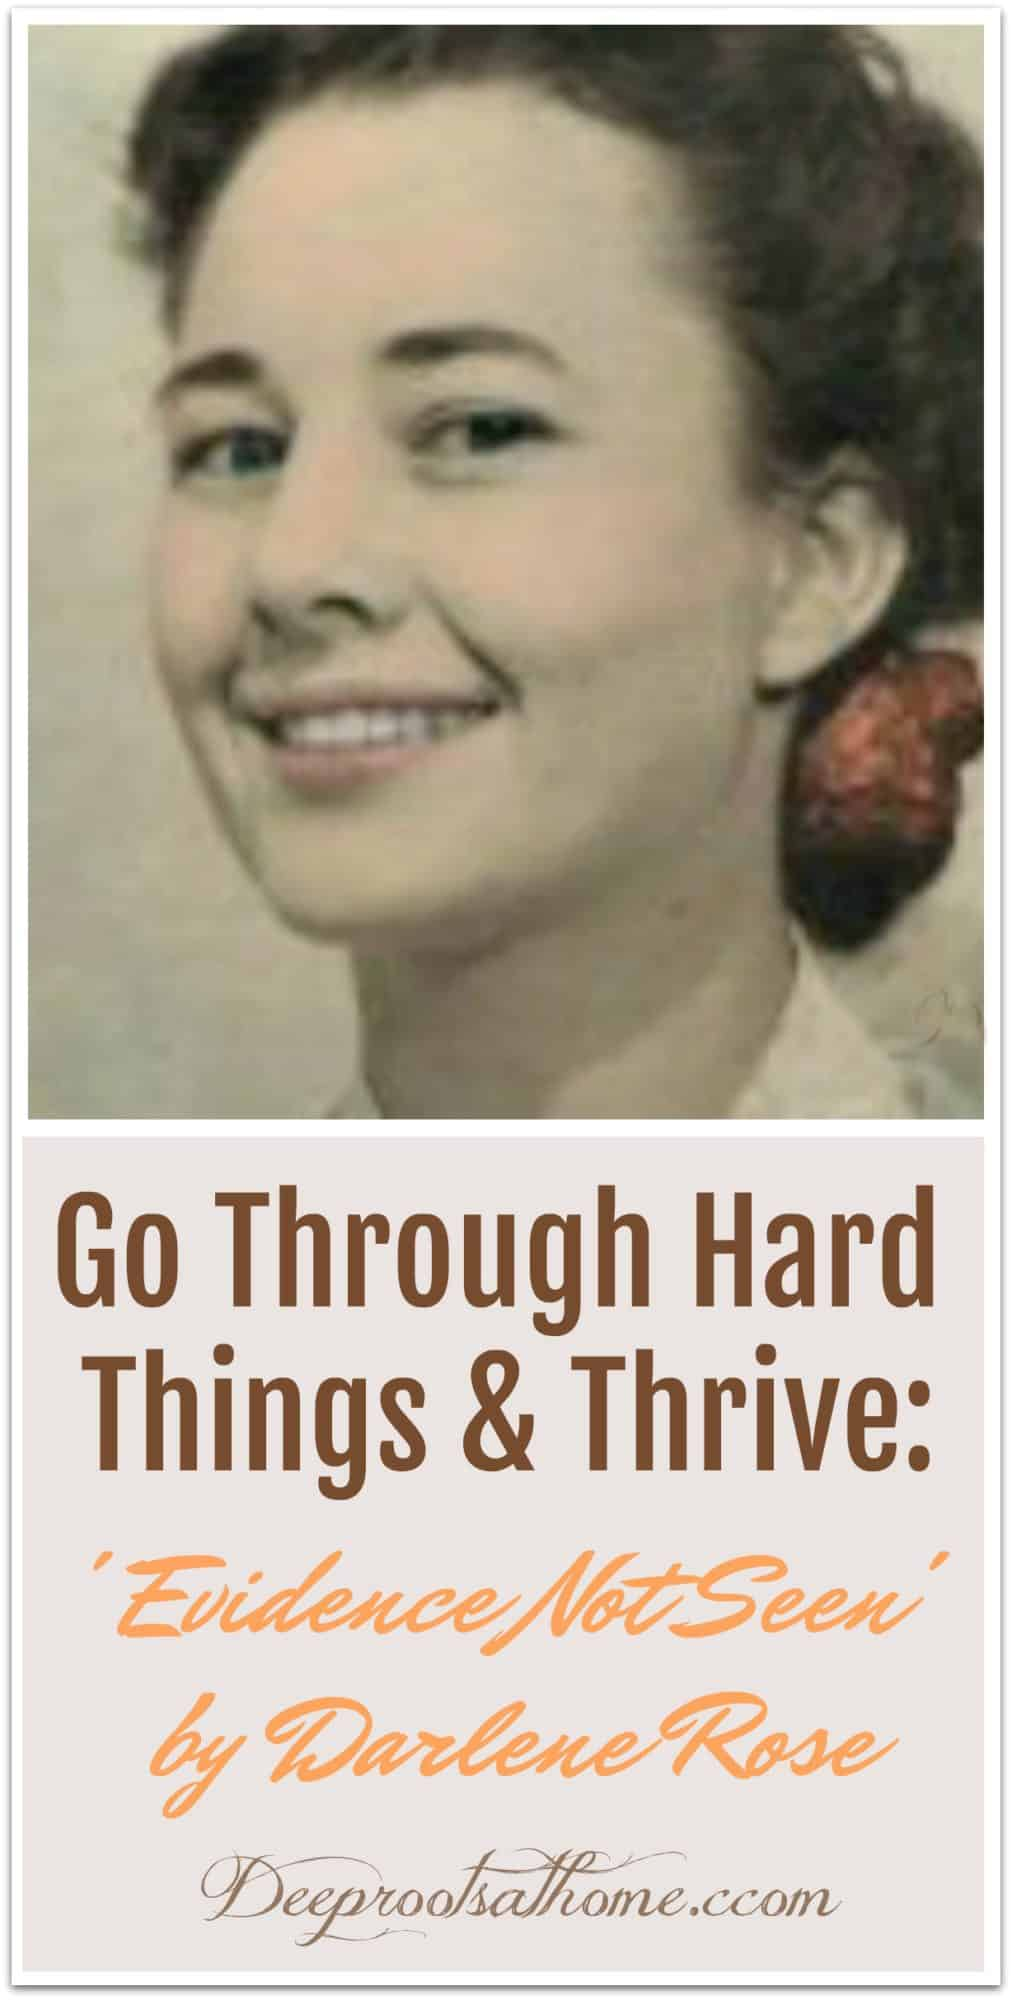 You Can Go Through Hard Places and Thrive: Evidence Not Seen by Darlene Rose, Darlene Diebler Rose.